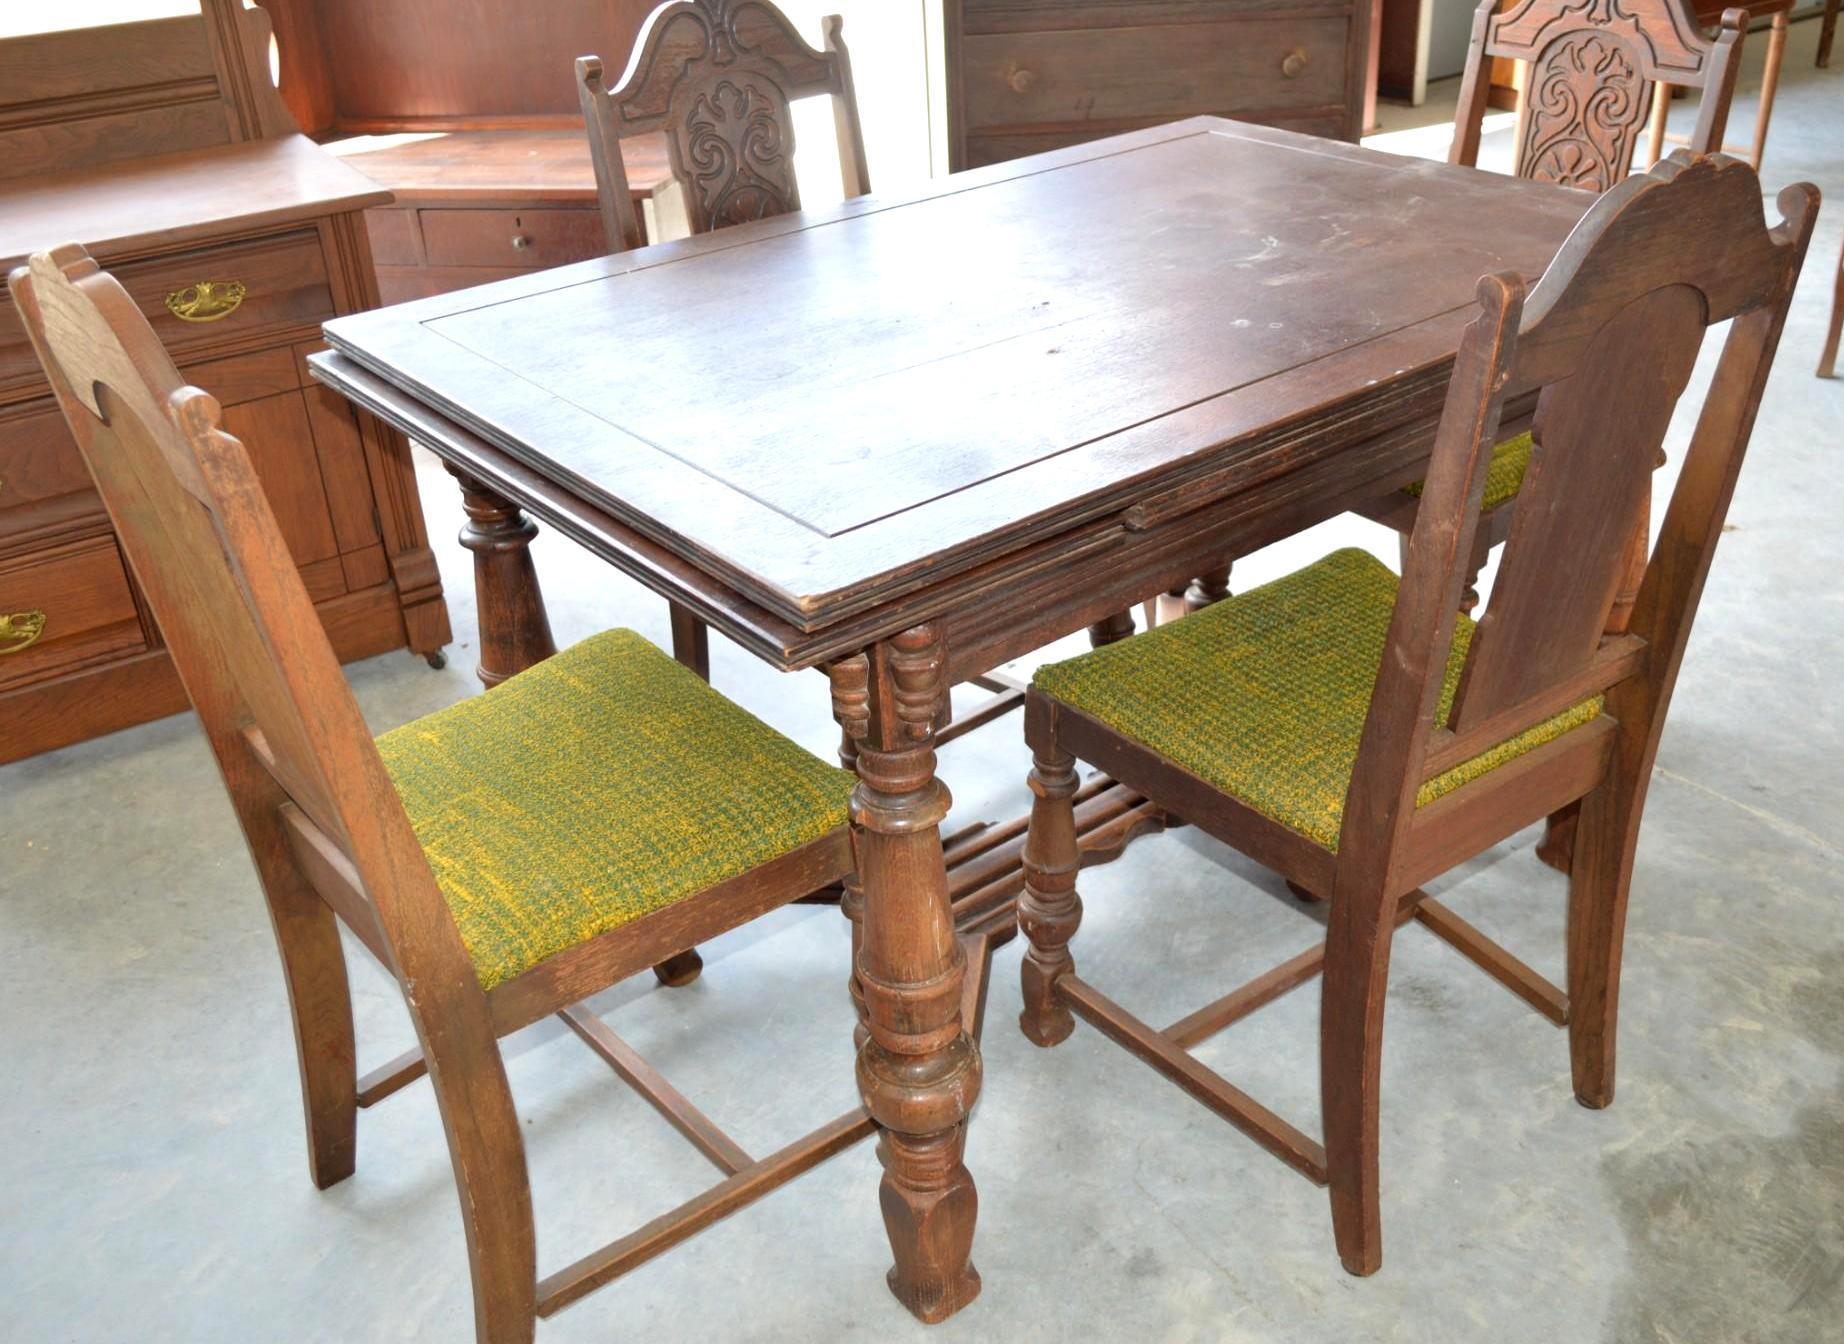 Dining Table With Slide Out Leaves